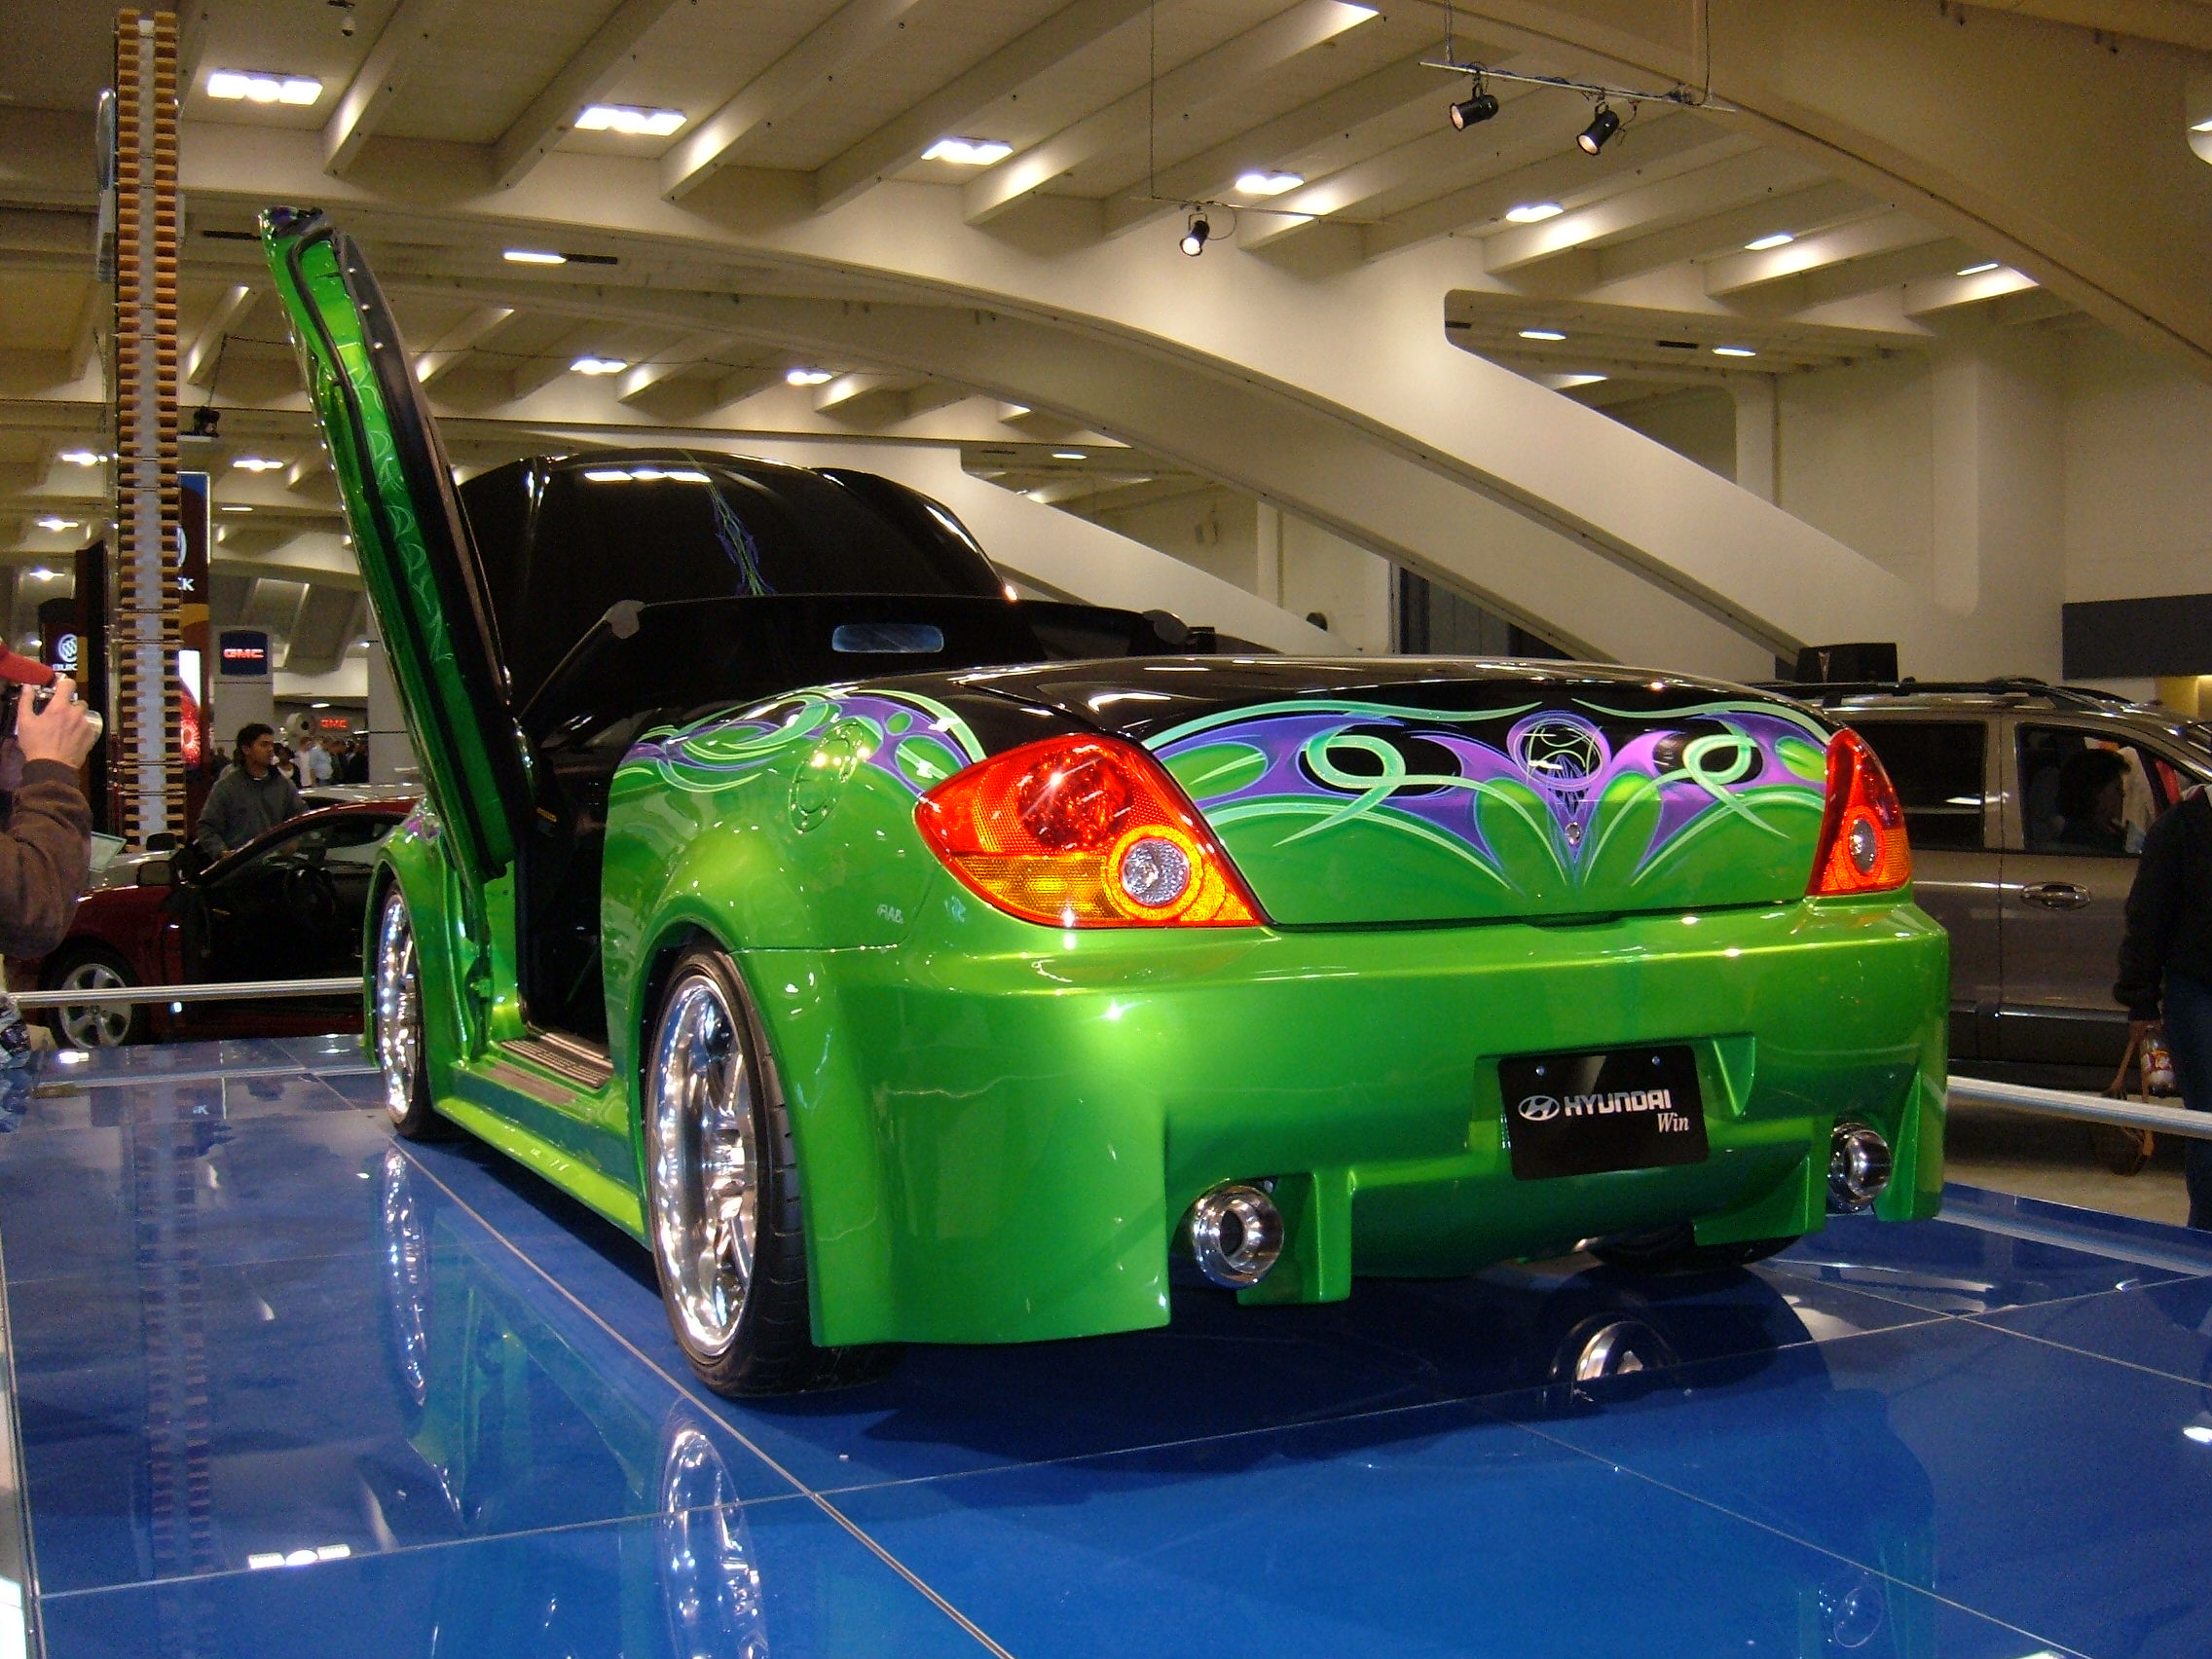 Hyundai tiburon photo - 2